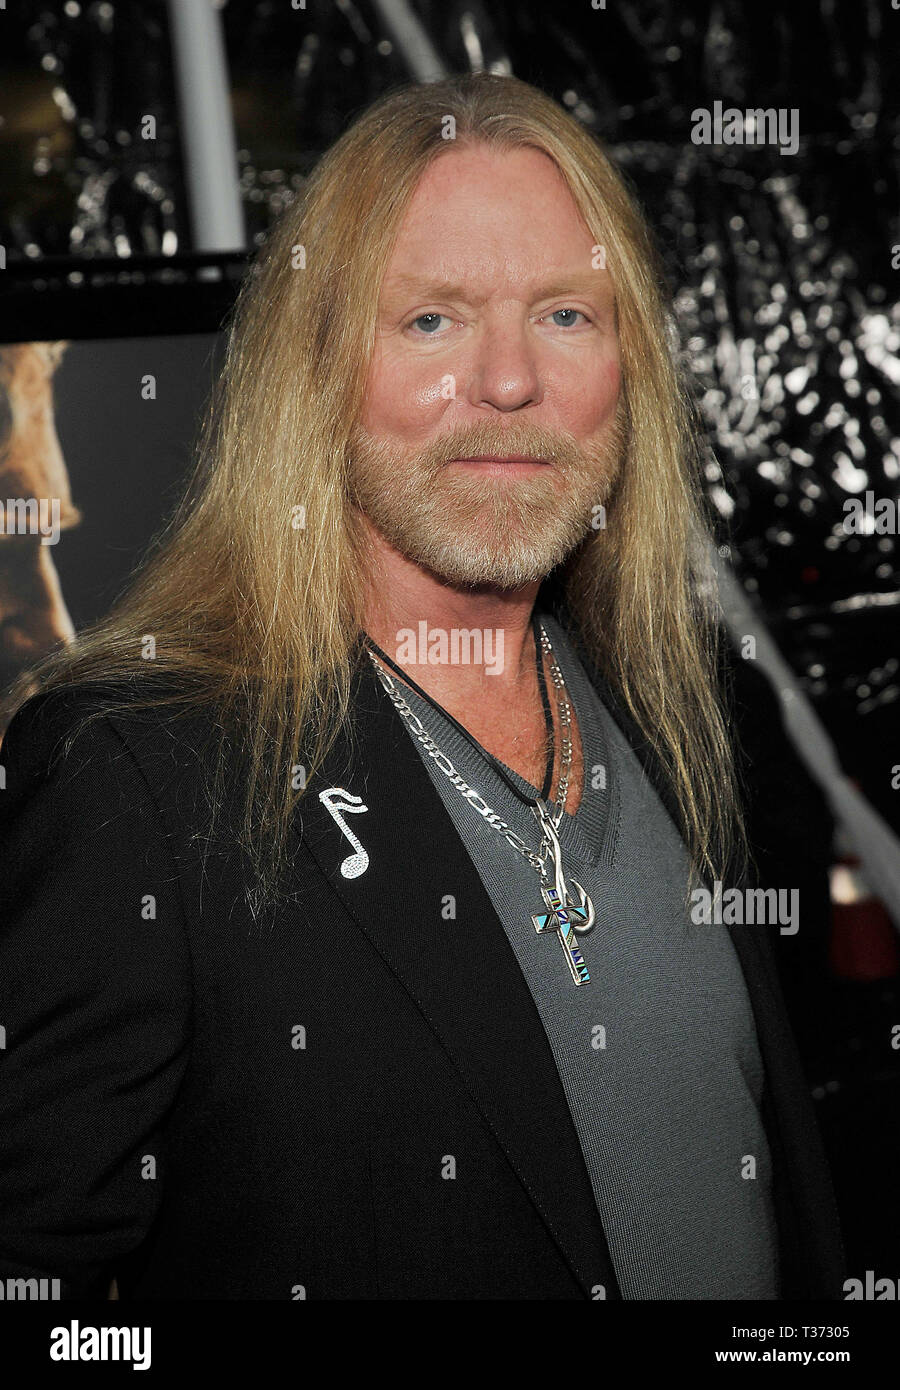 Page 3 Allman High Resolution Stock Photography And Images Alamy